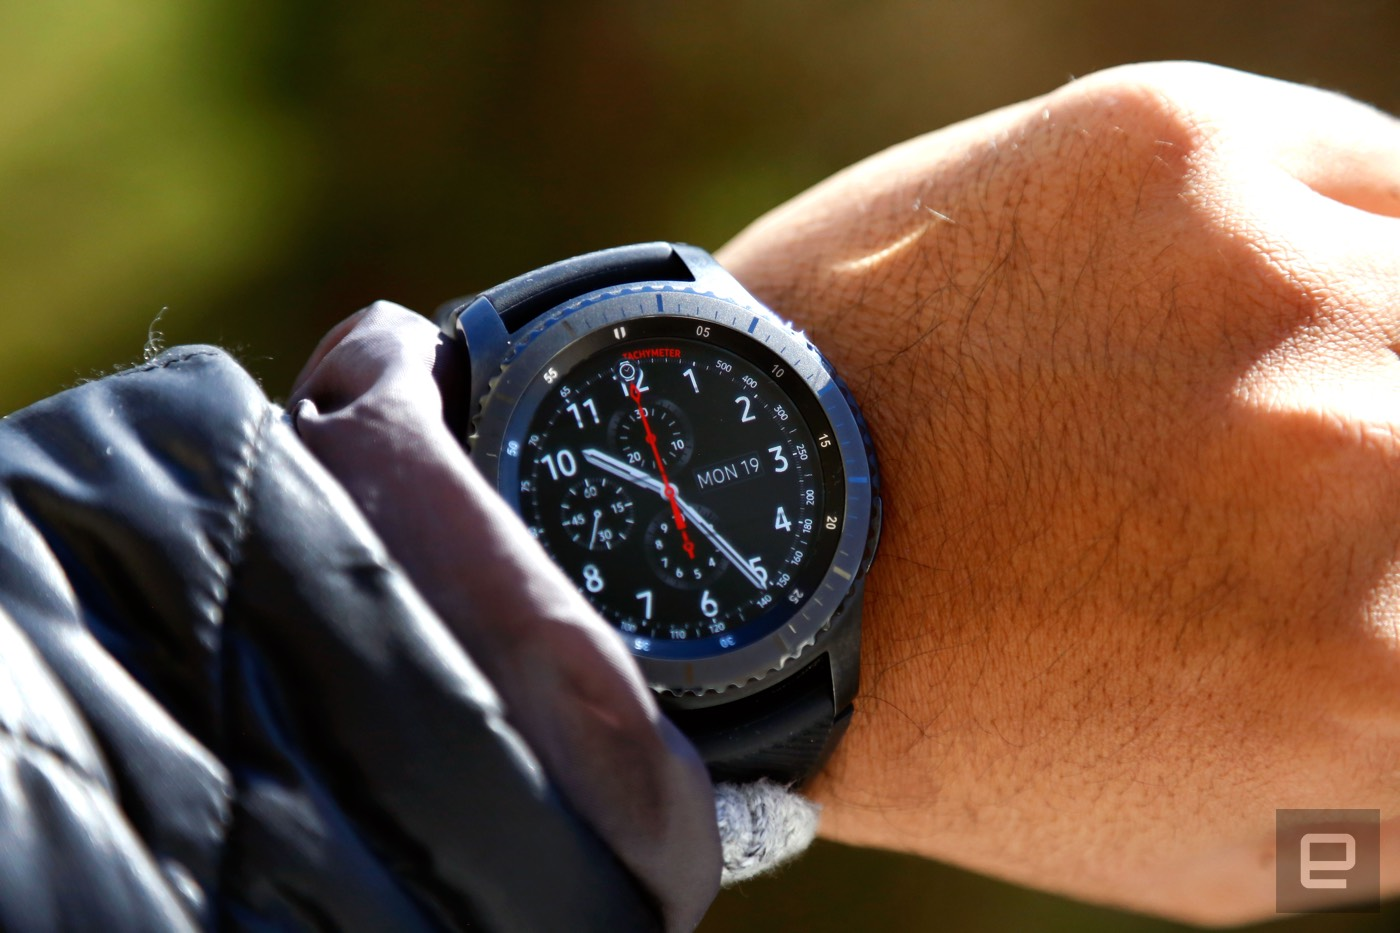 Samsung Gear S3 Frontier review: Lots of features, not enough apps